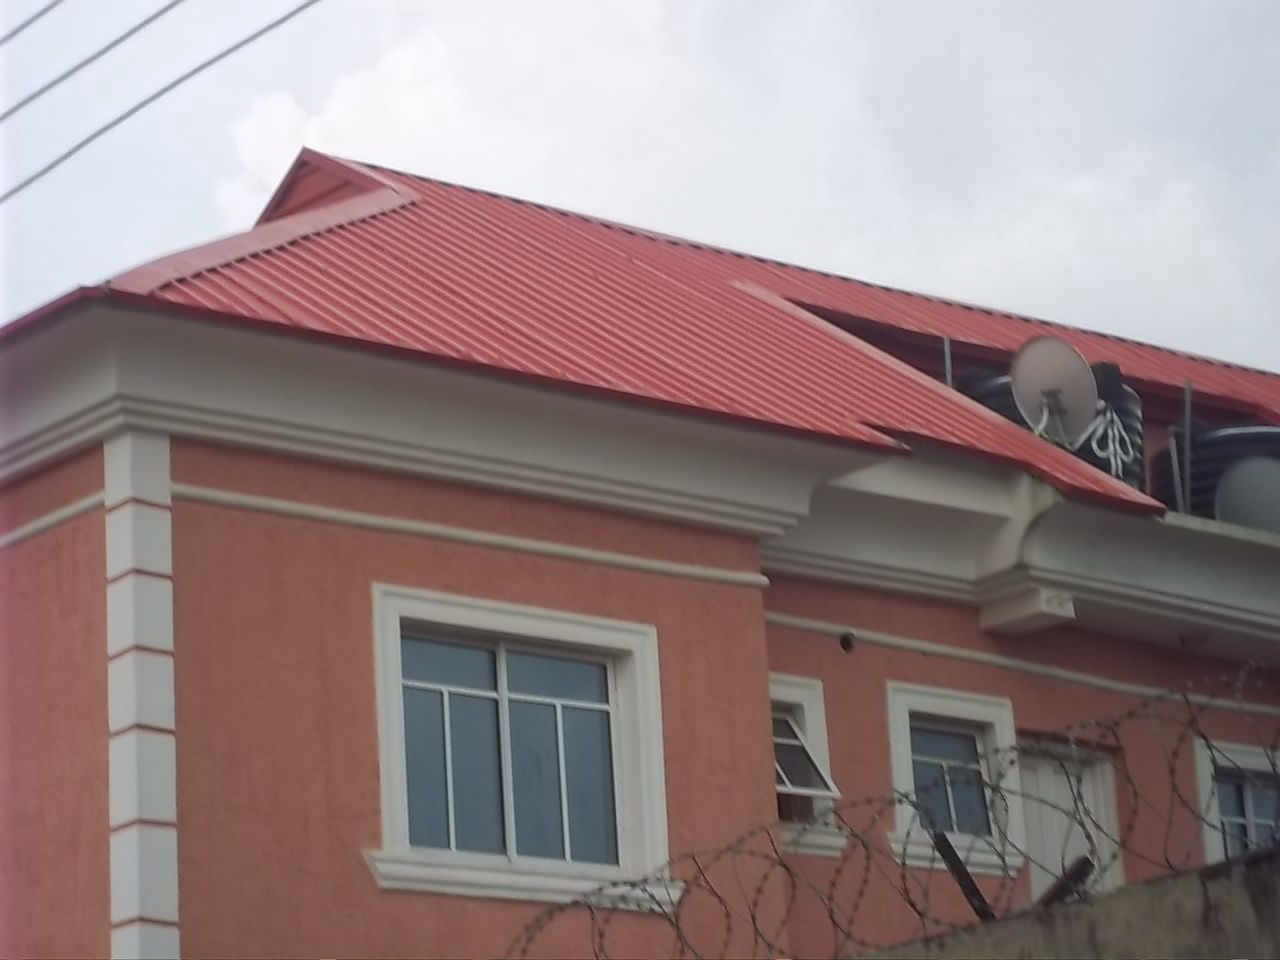 Nigeria Parapet For House And Windows Pop Design Find The Best Images Of Modern House Decor And Architecture Modern House House Decor Modern House Front Design